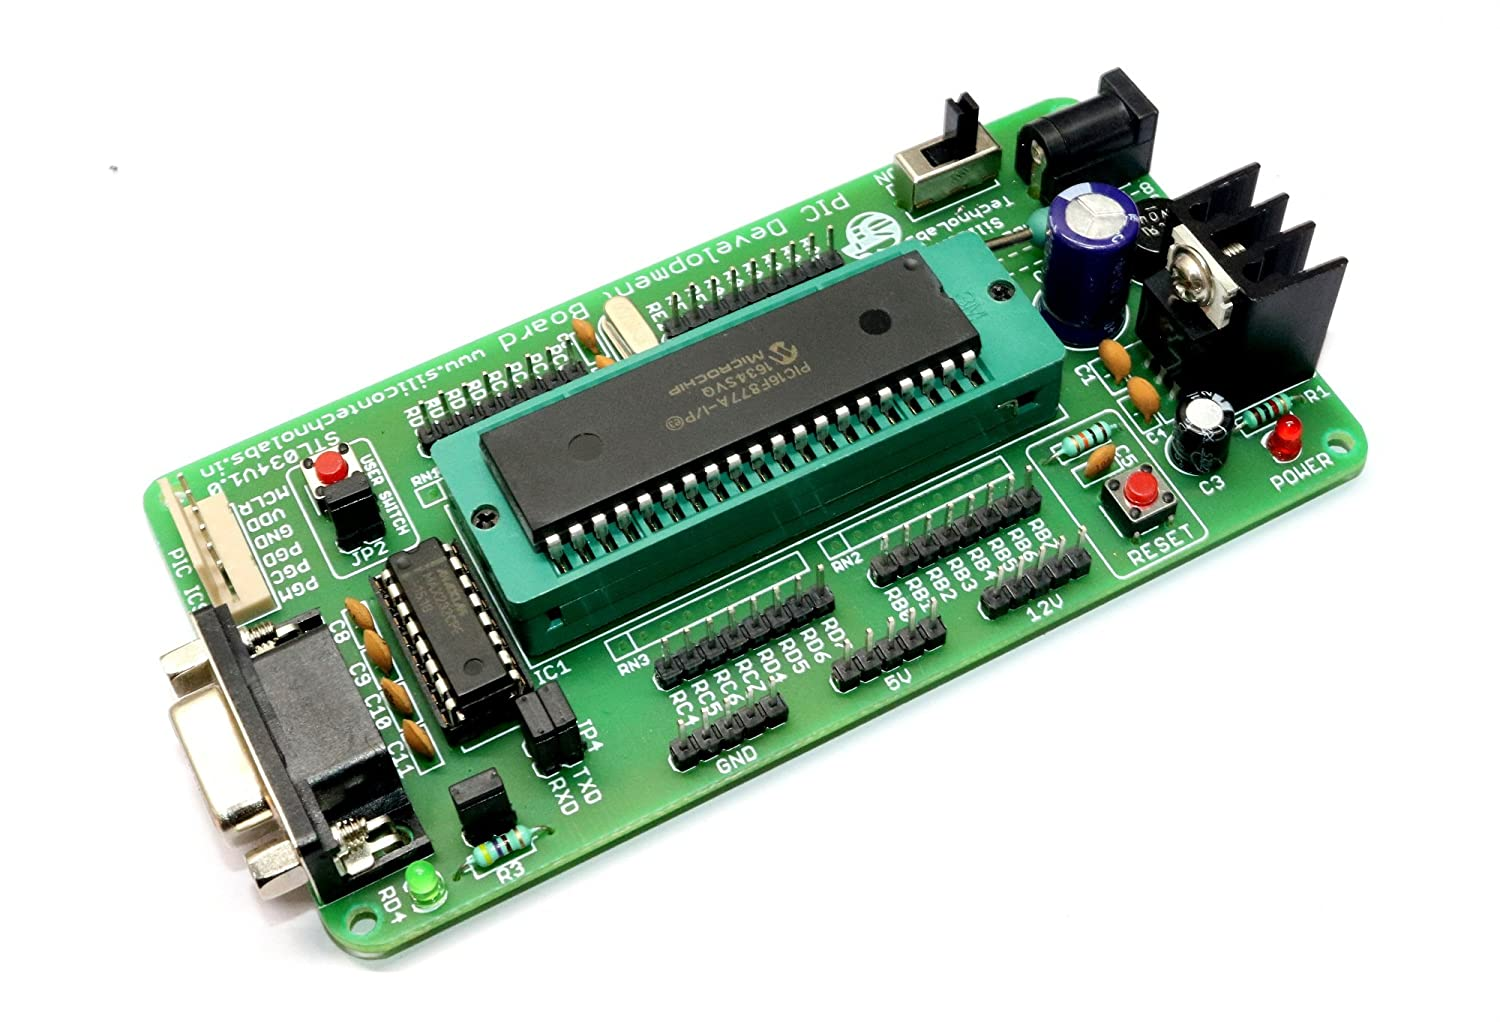 Buy Silicon Technolabs Pic Development Board Zif Socket Pickit 1 Circuit Diagram With On Pic16f877a Max232 Online At Low Prices In India